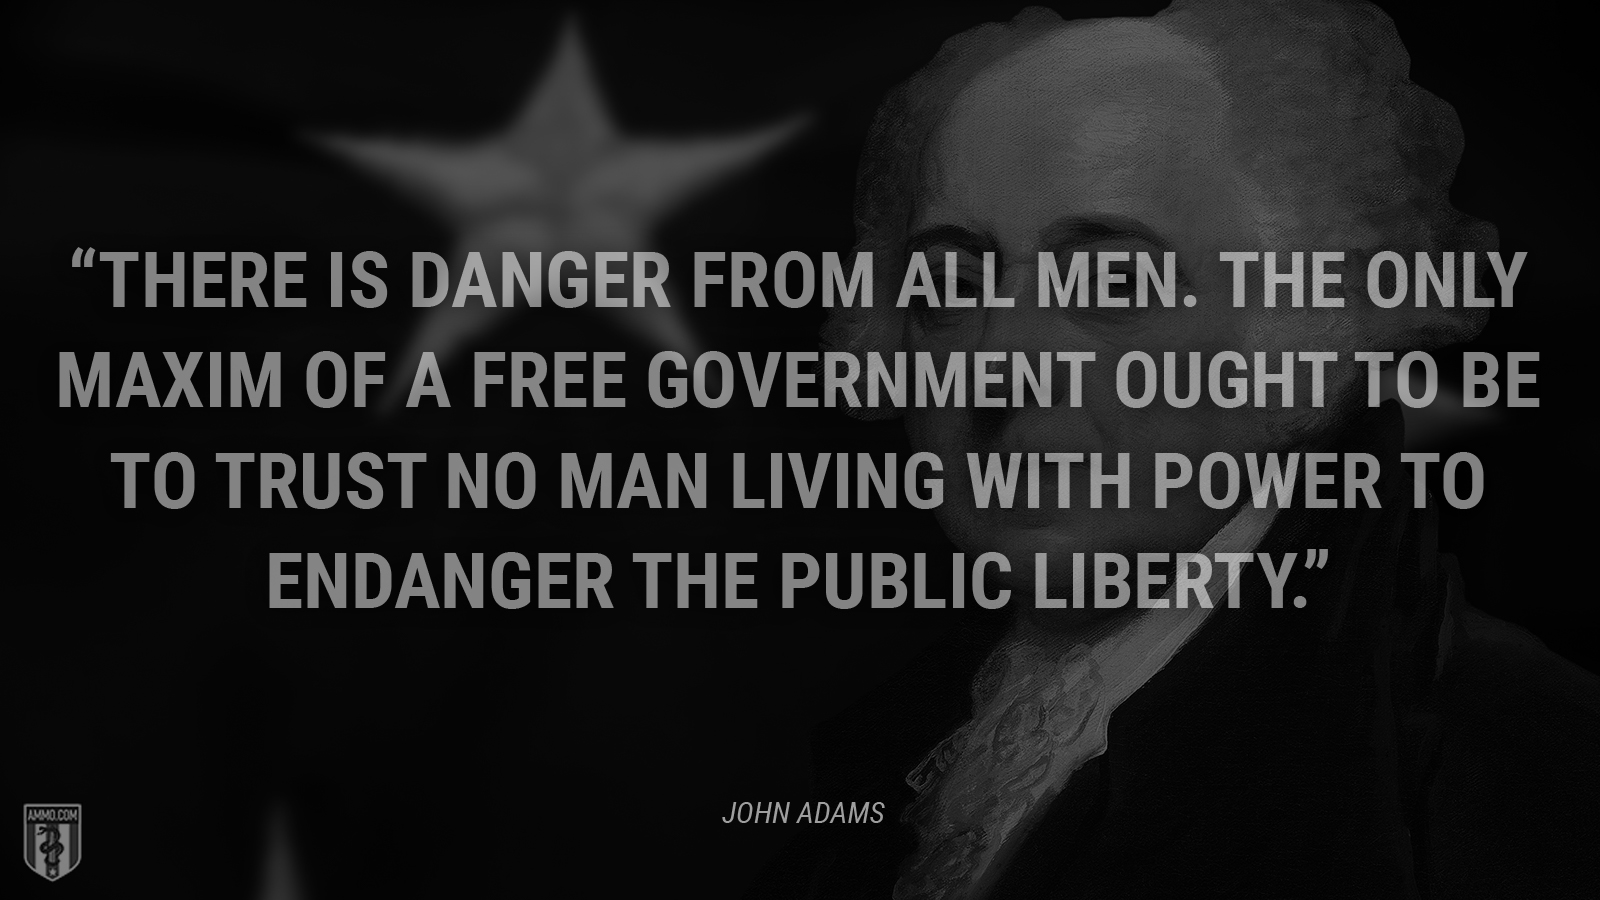 """""""There is danger from all men. The only maxim of a free government ought to be to trust no man living with power to endanger the public liberty."""" - John Adams"""